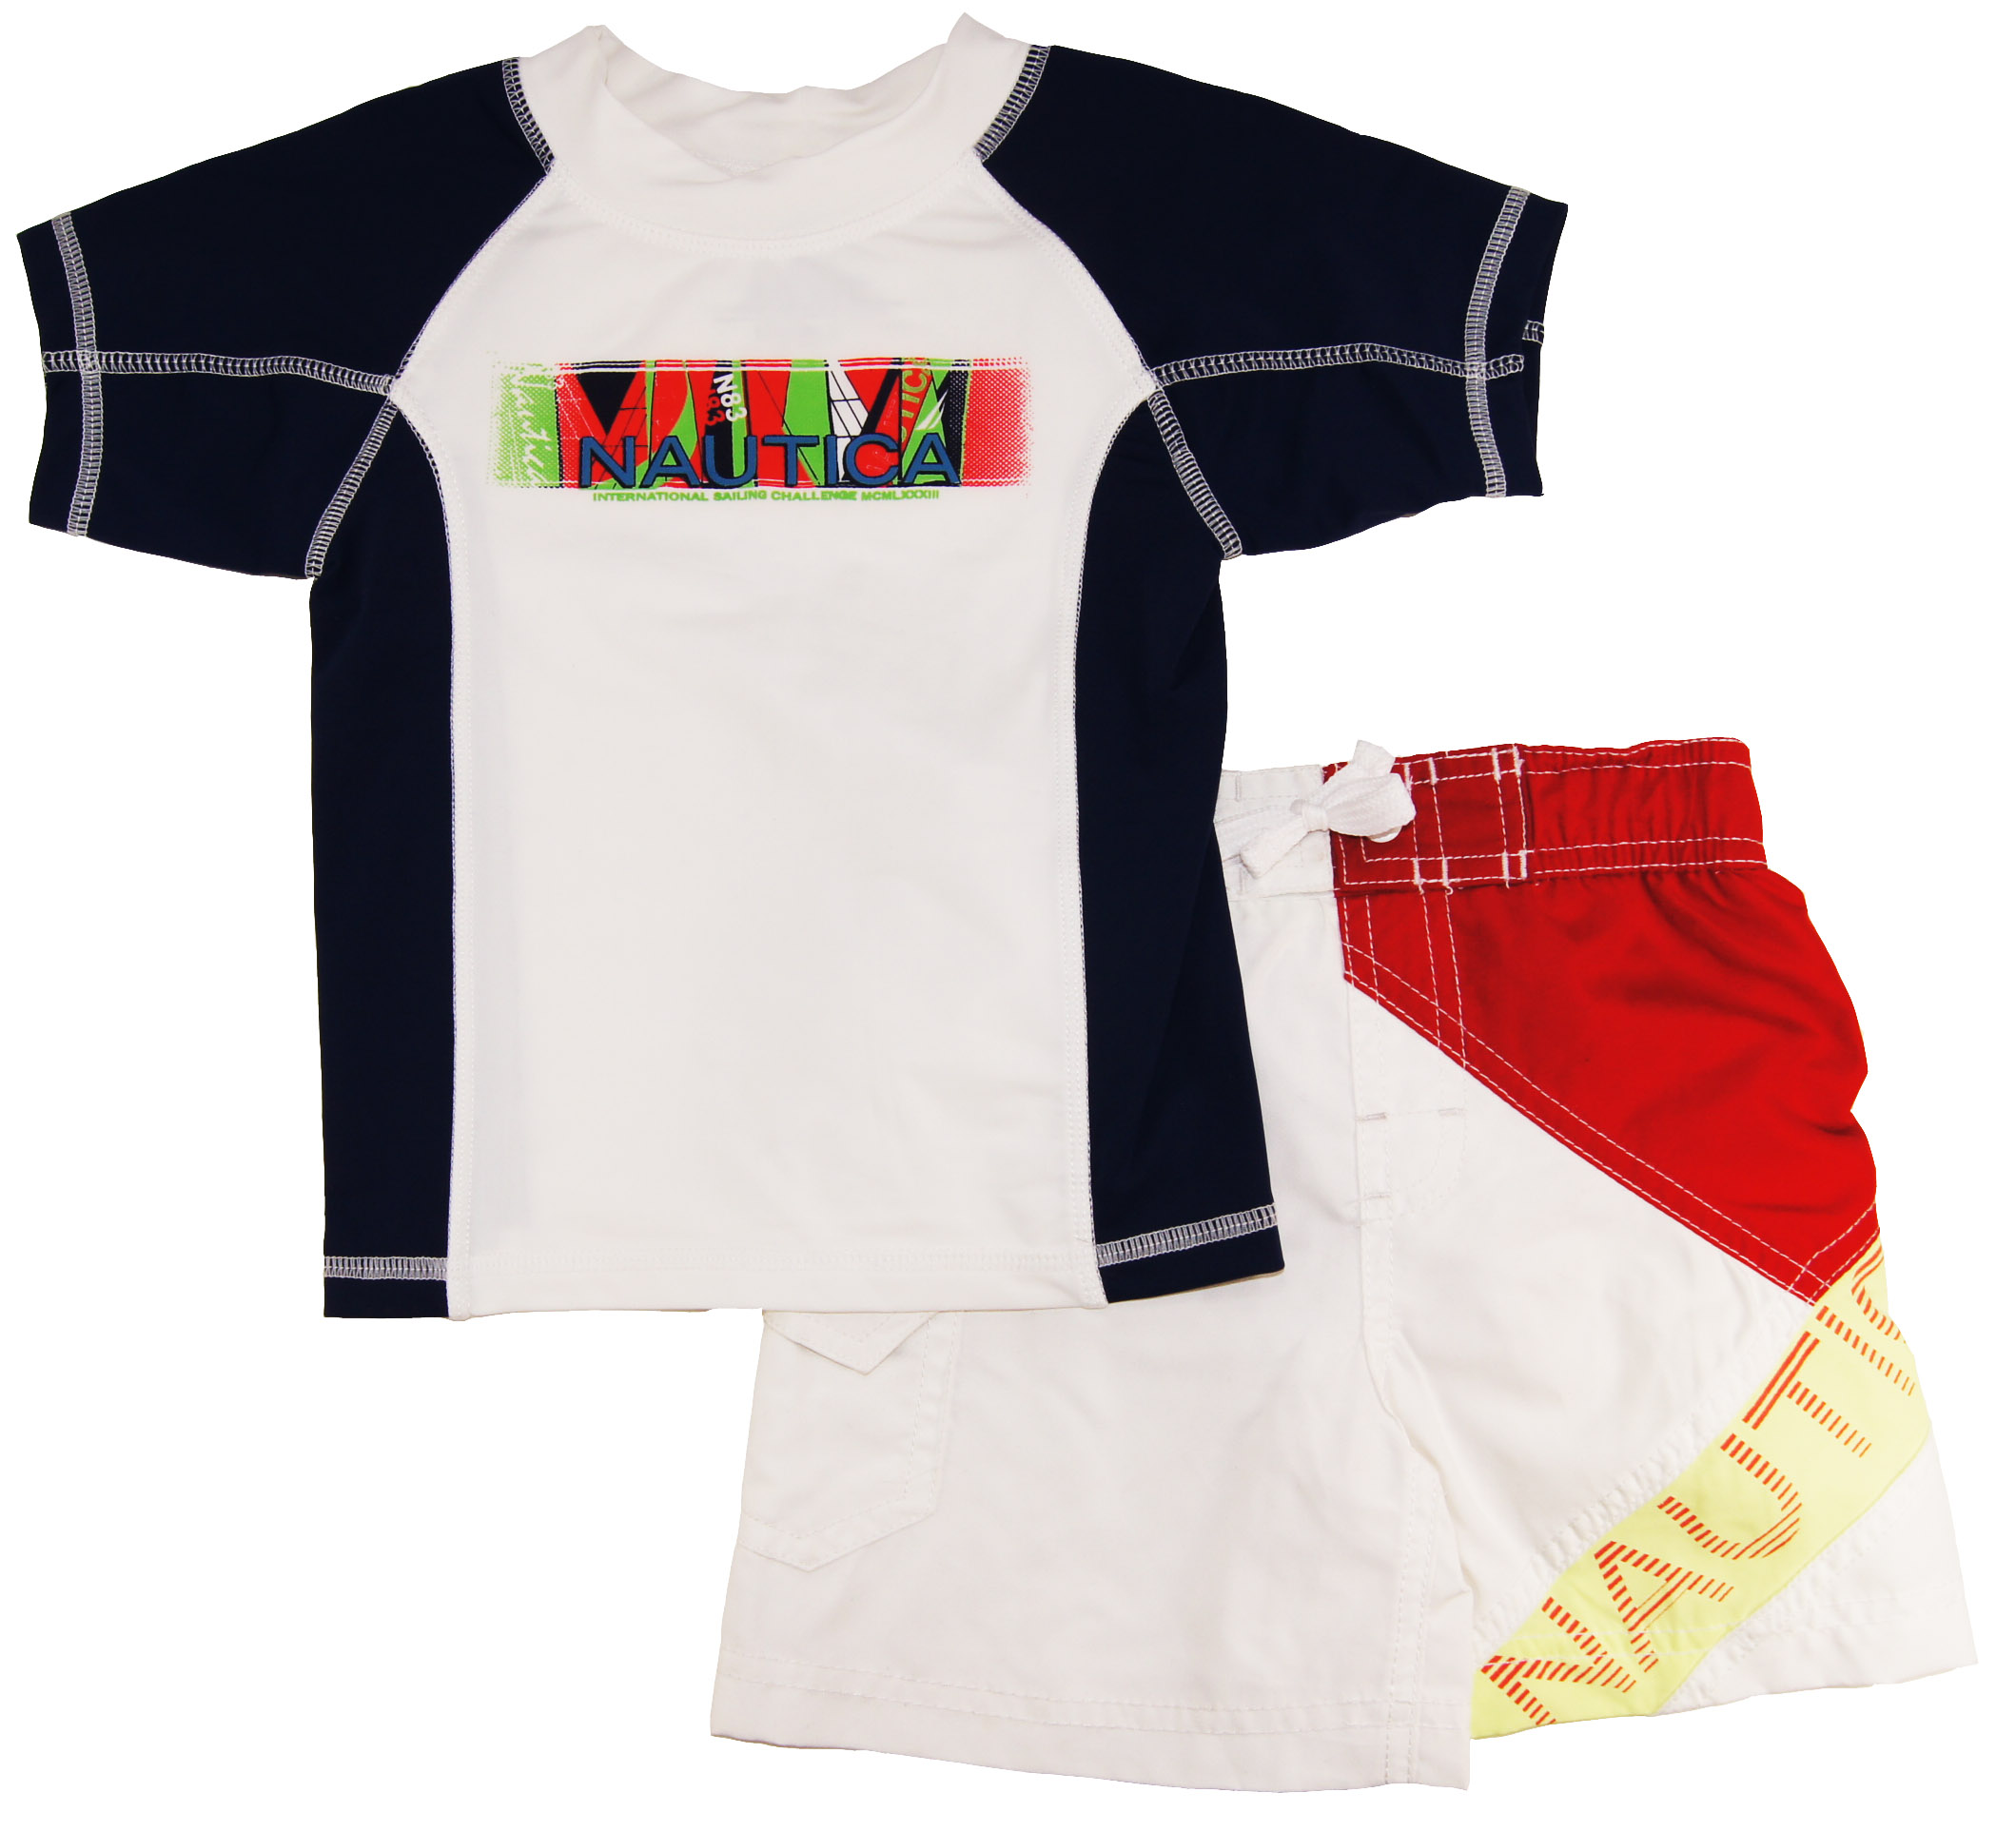 Nautica Infant Boys White Print Rash Guard Swim Top/Shorts 2 Pc Set 12M 18M 24M at Sears.com